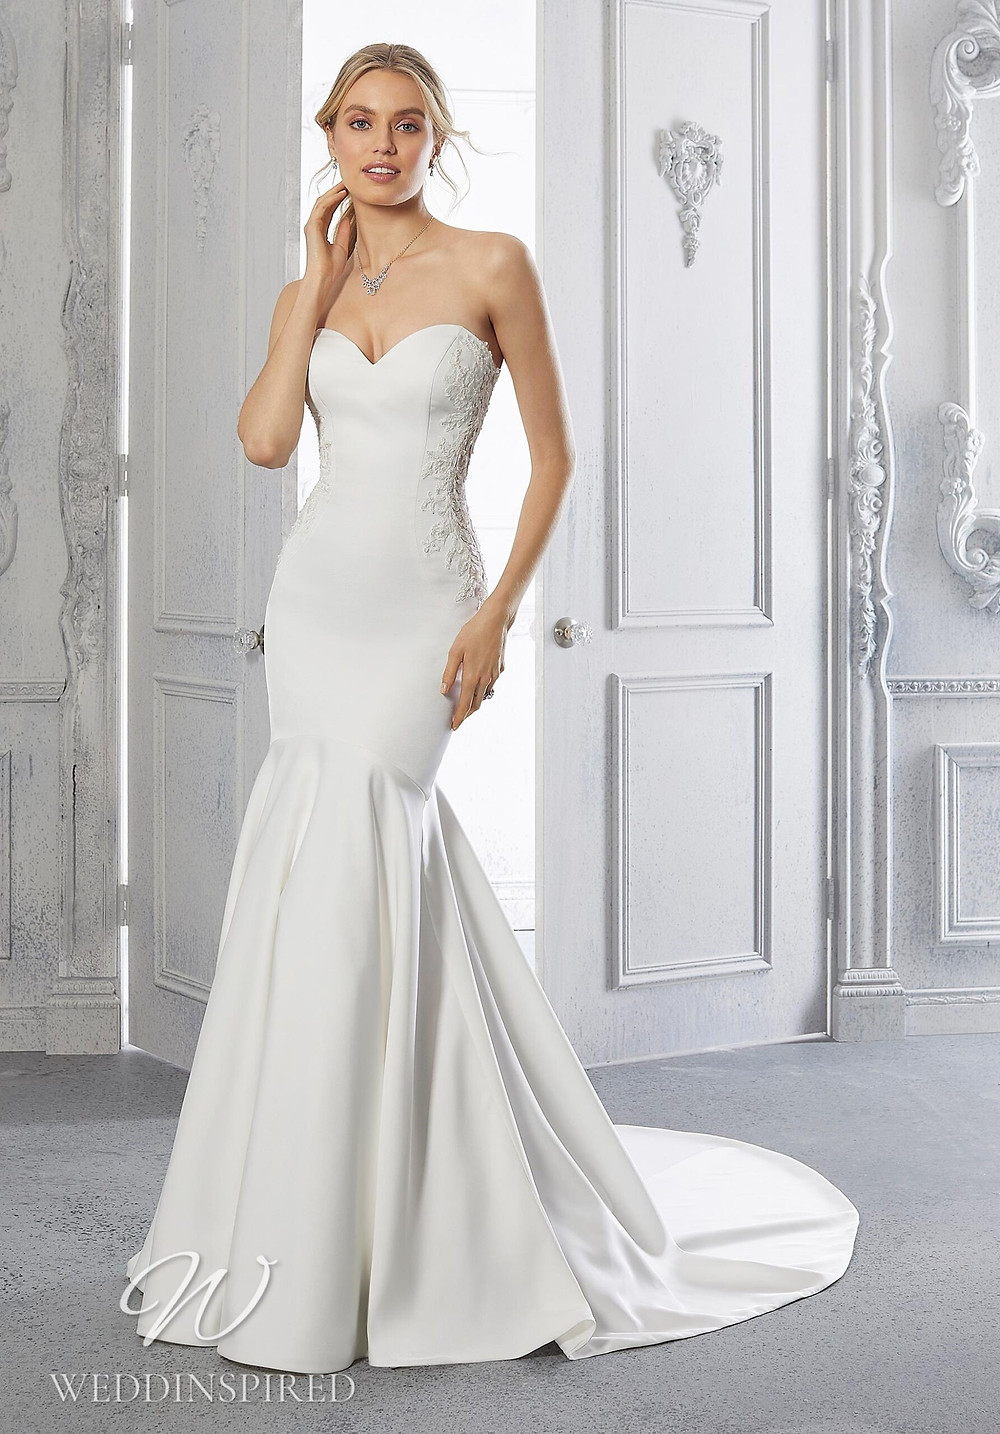 A Madeline Gardner strapless satin and lace mermaid wedding dress